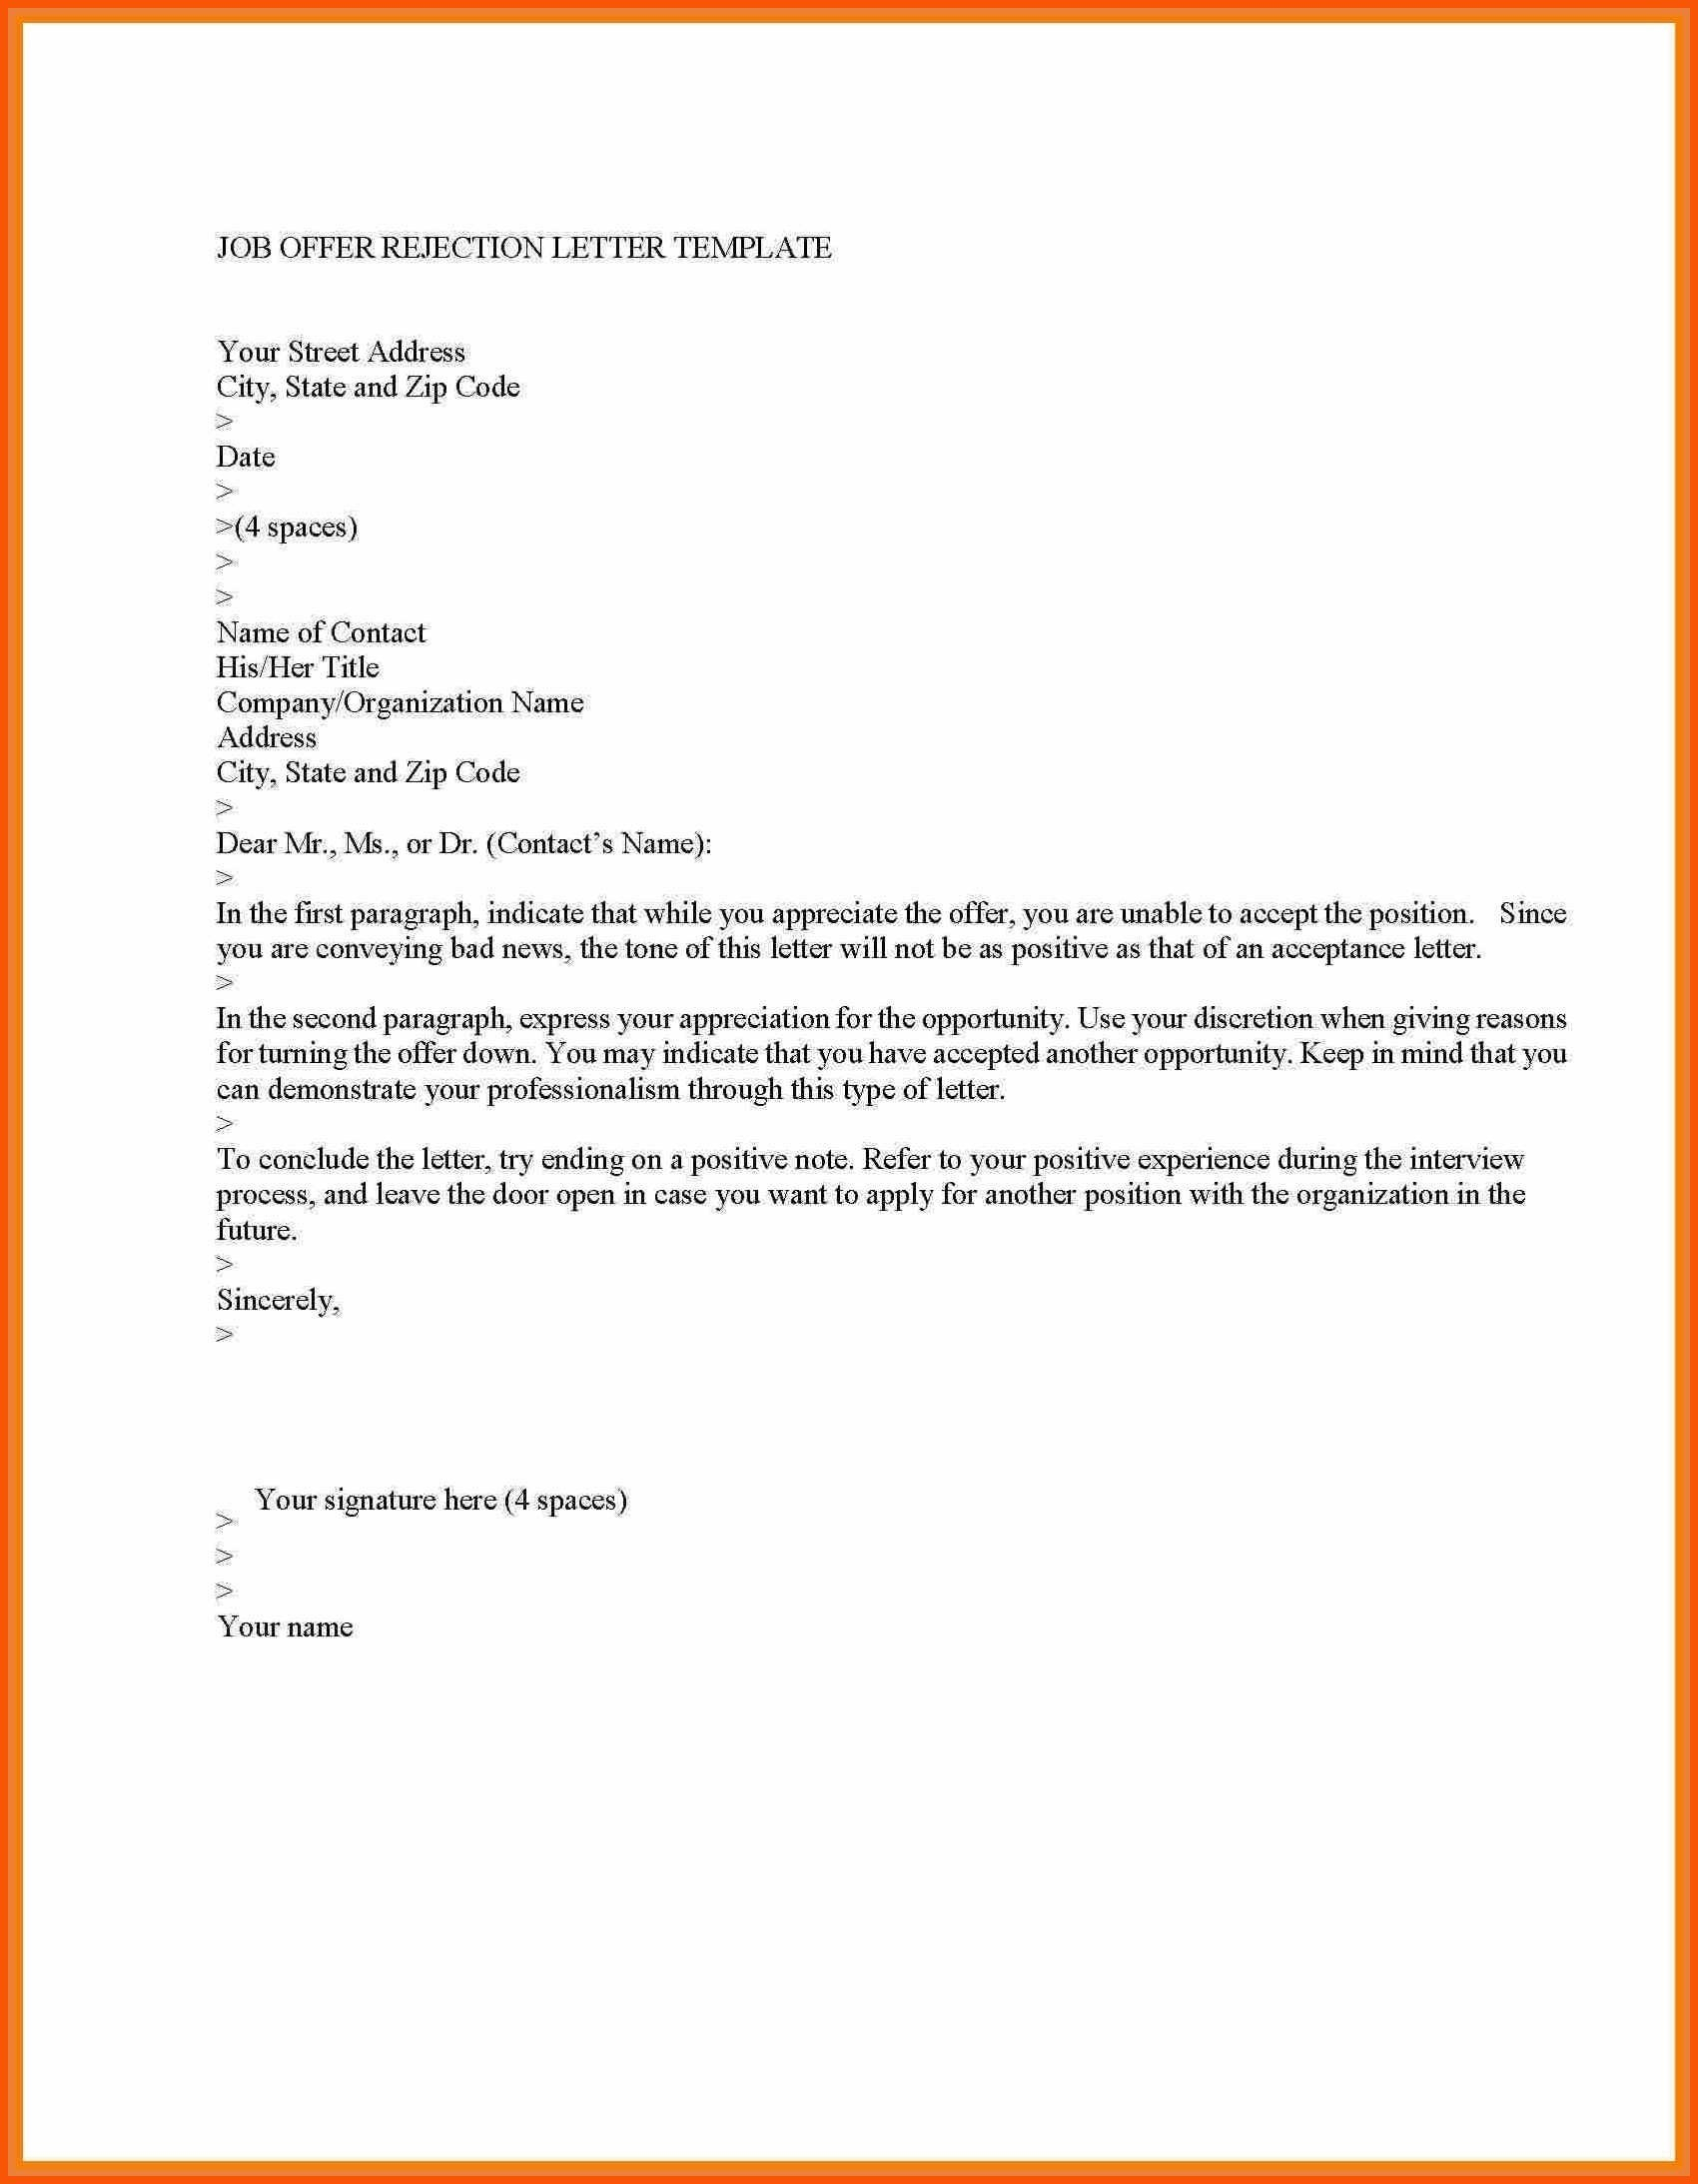 Rejection Letter Template - College Rejection Letter Template